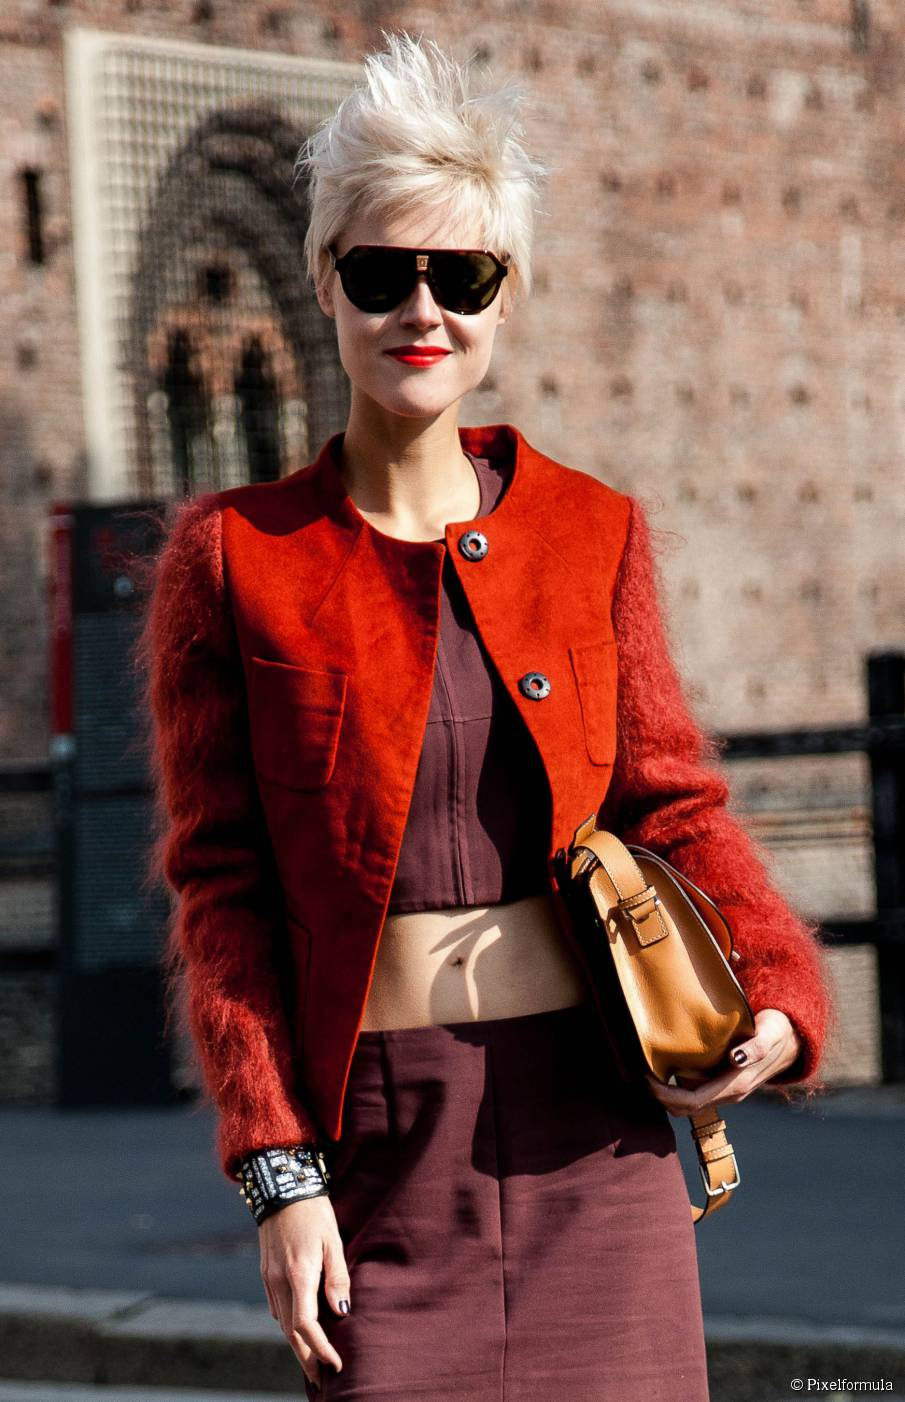 Streetstyle blonde Pixie cuts